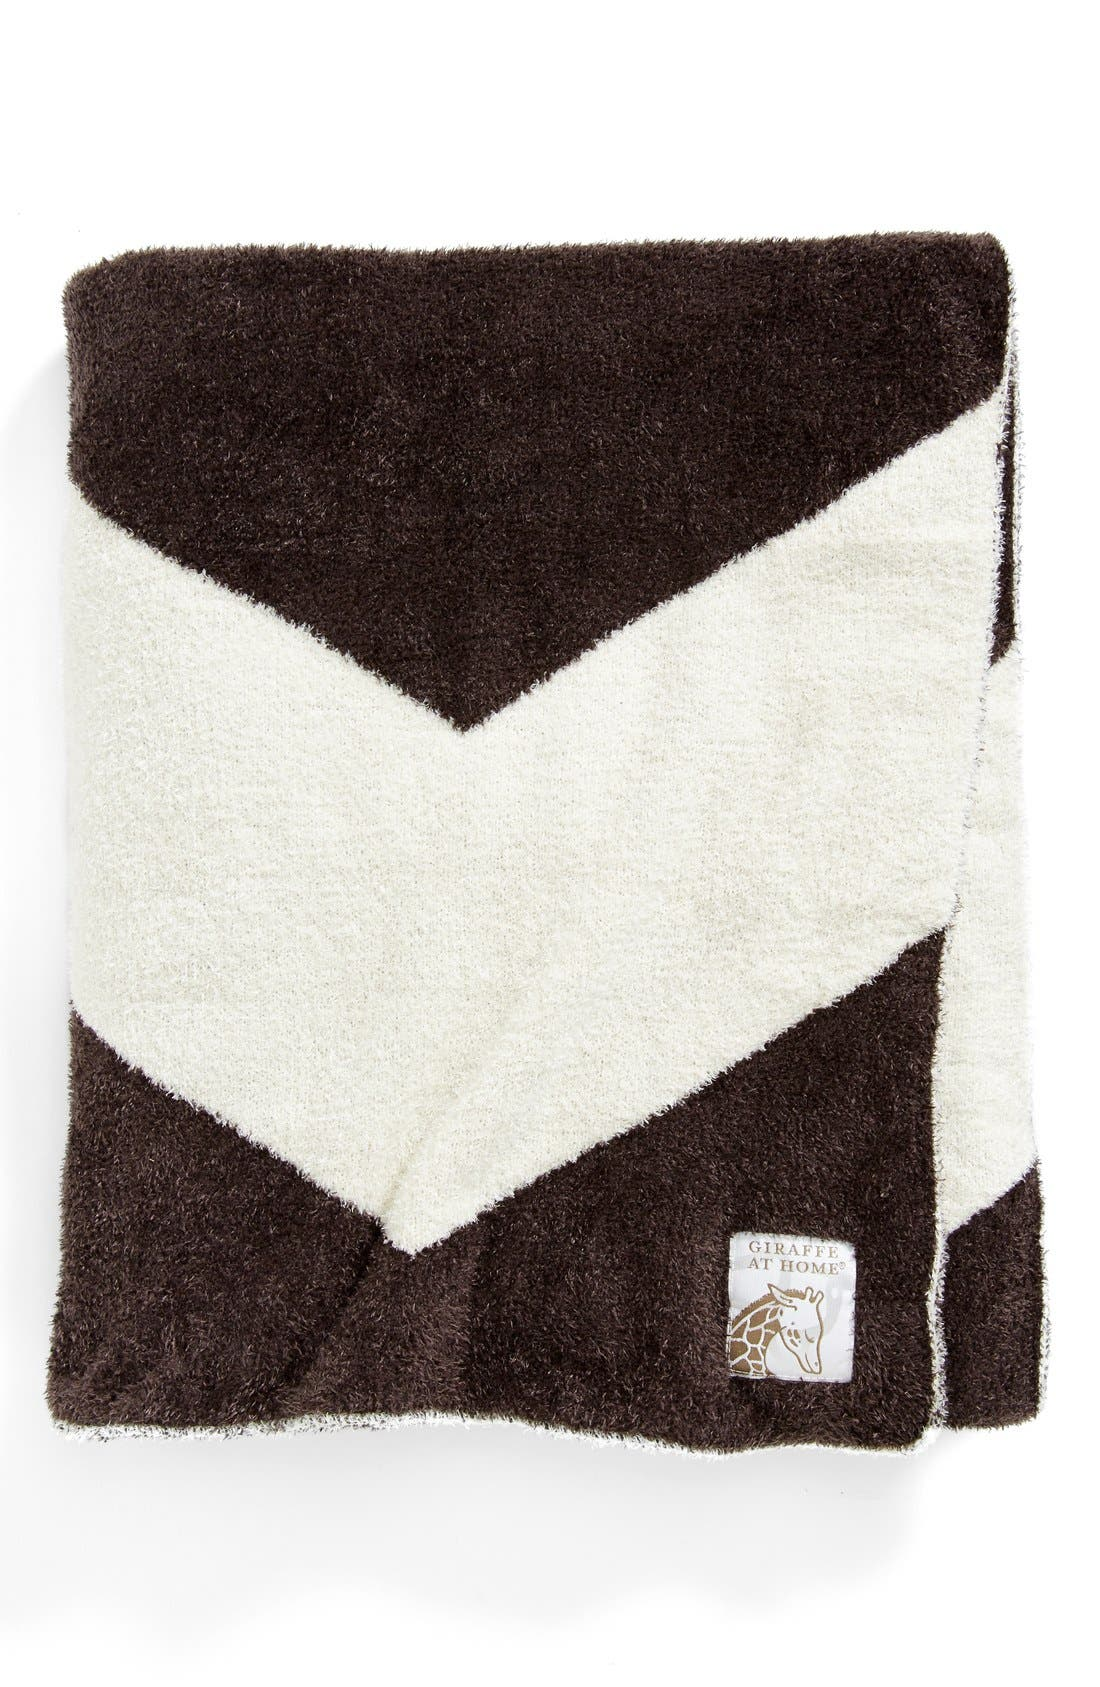 Main Image - Giraffe at Home 'Dolce Chevron' Throw